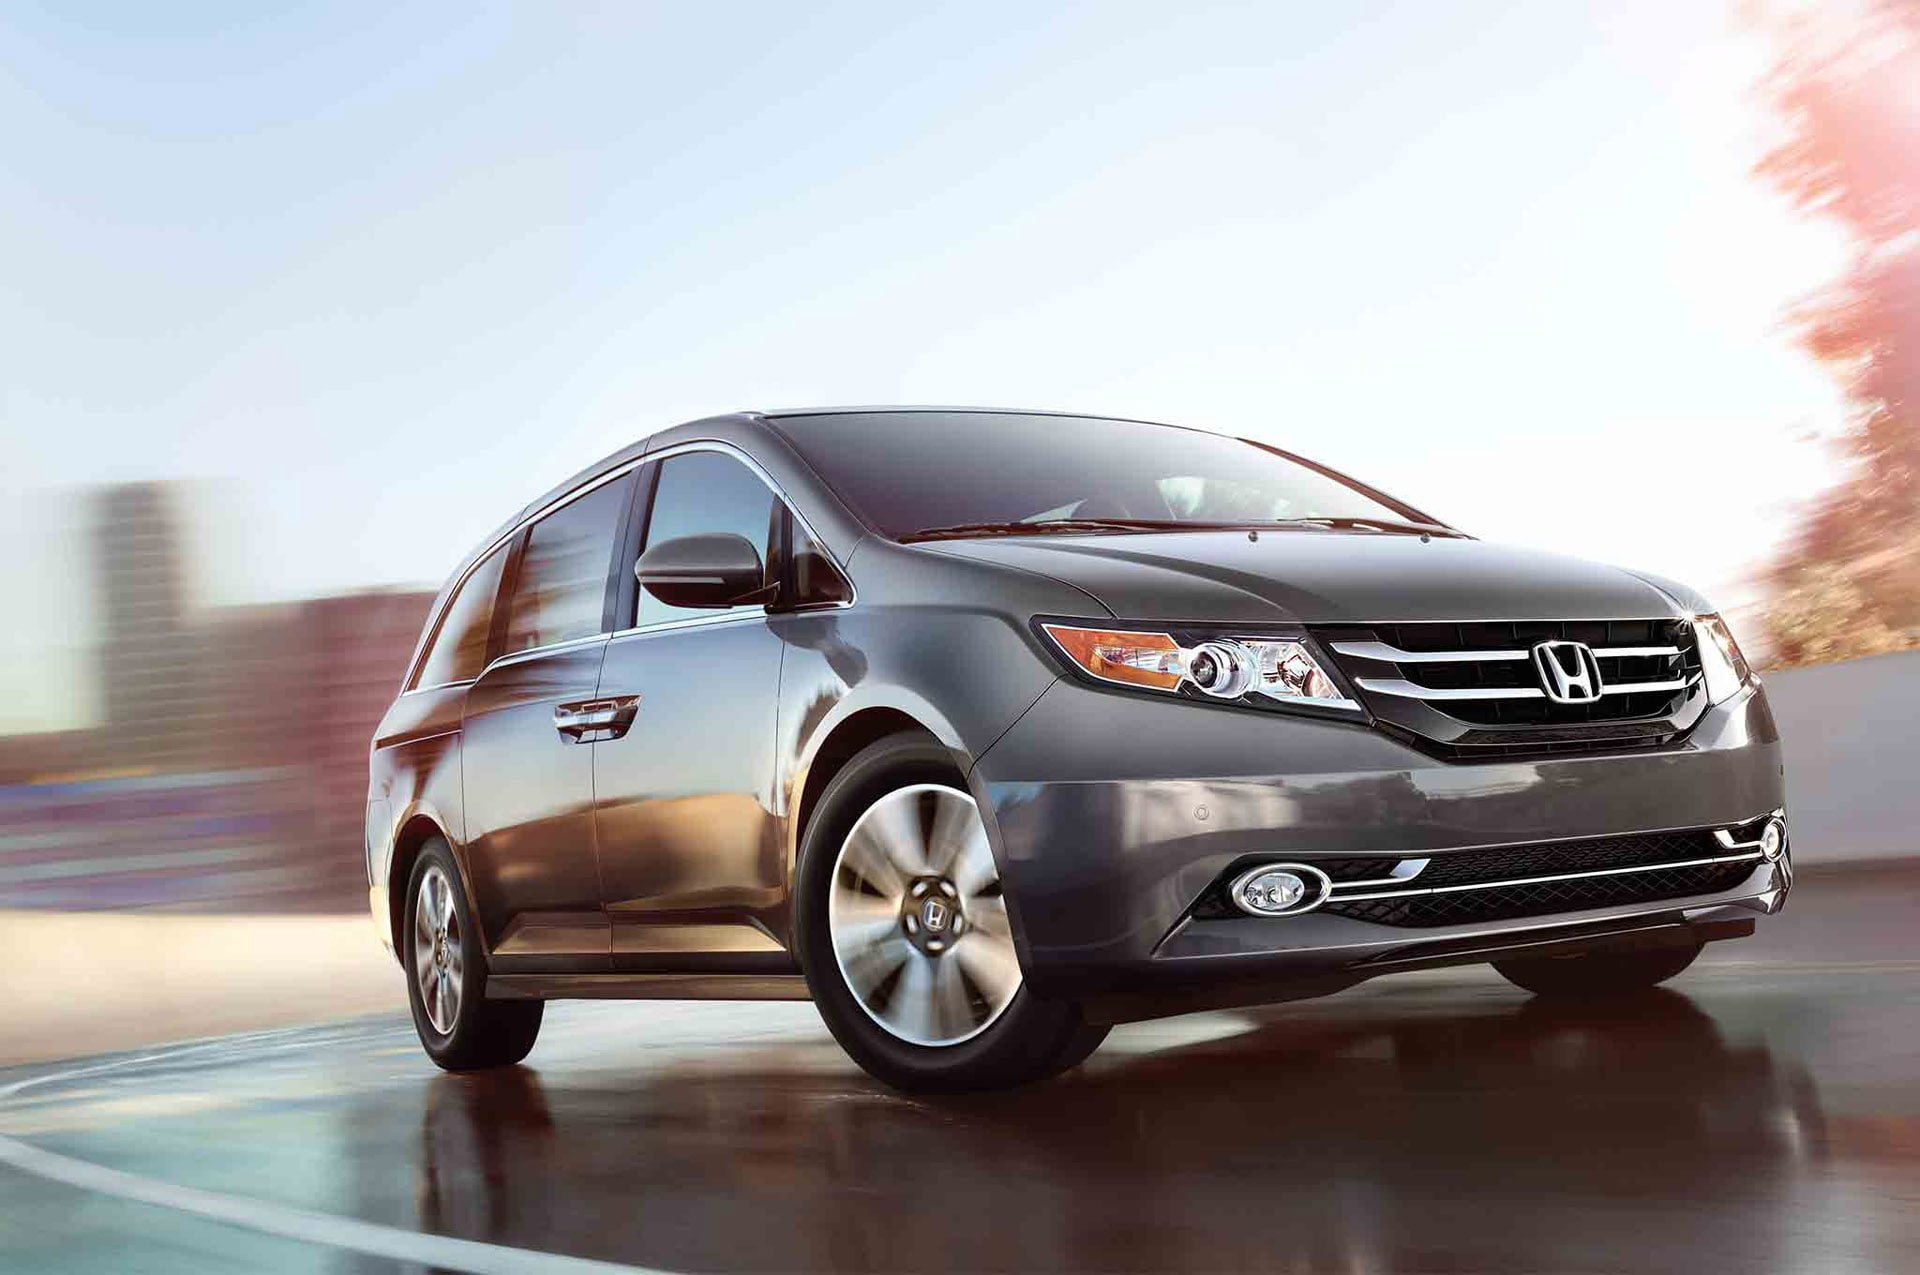 Paintless Dent Repair for Your Honda Odyssey Car